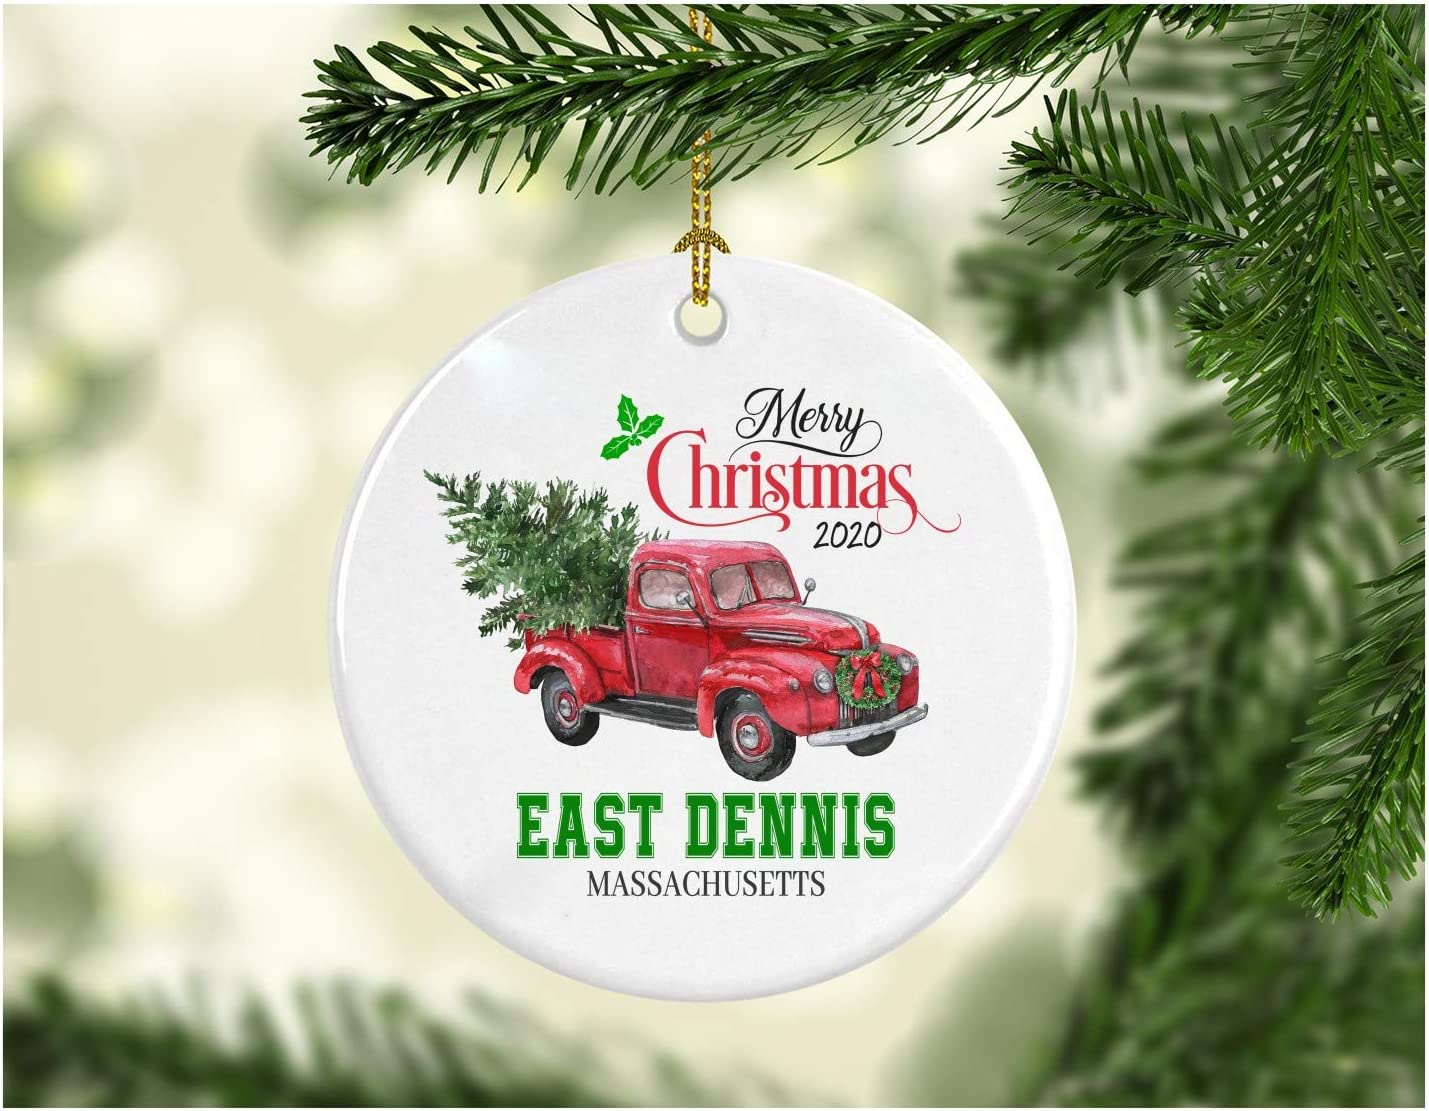 Eastern Christmas 2020 Amazon.com: Christmas Decoration Tree Merry Christmas Ornament